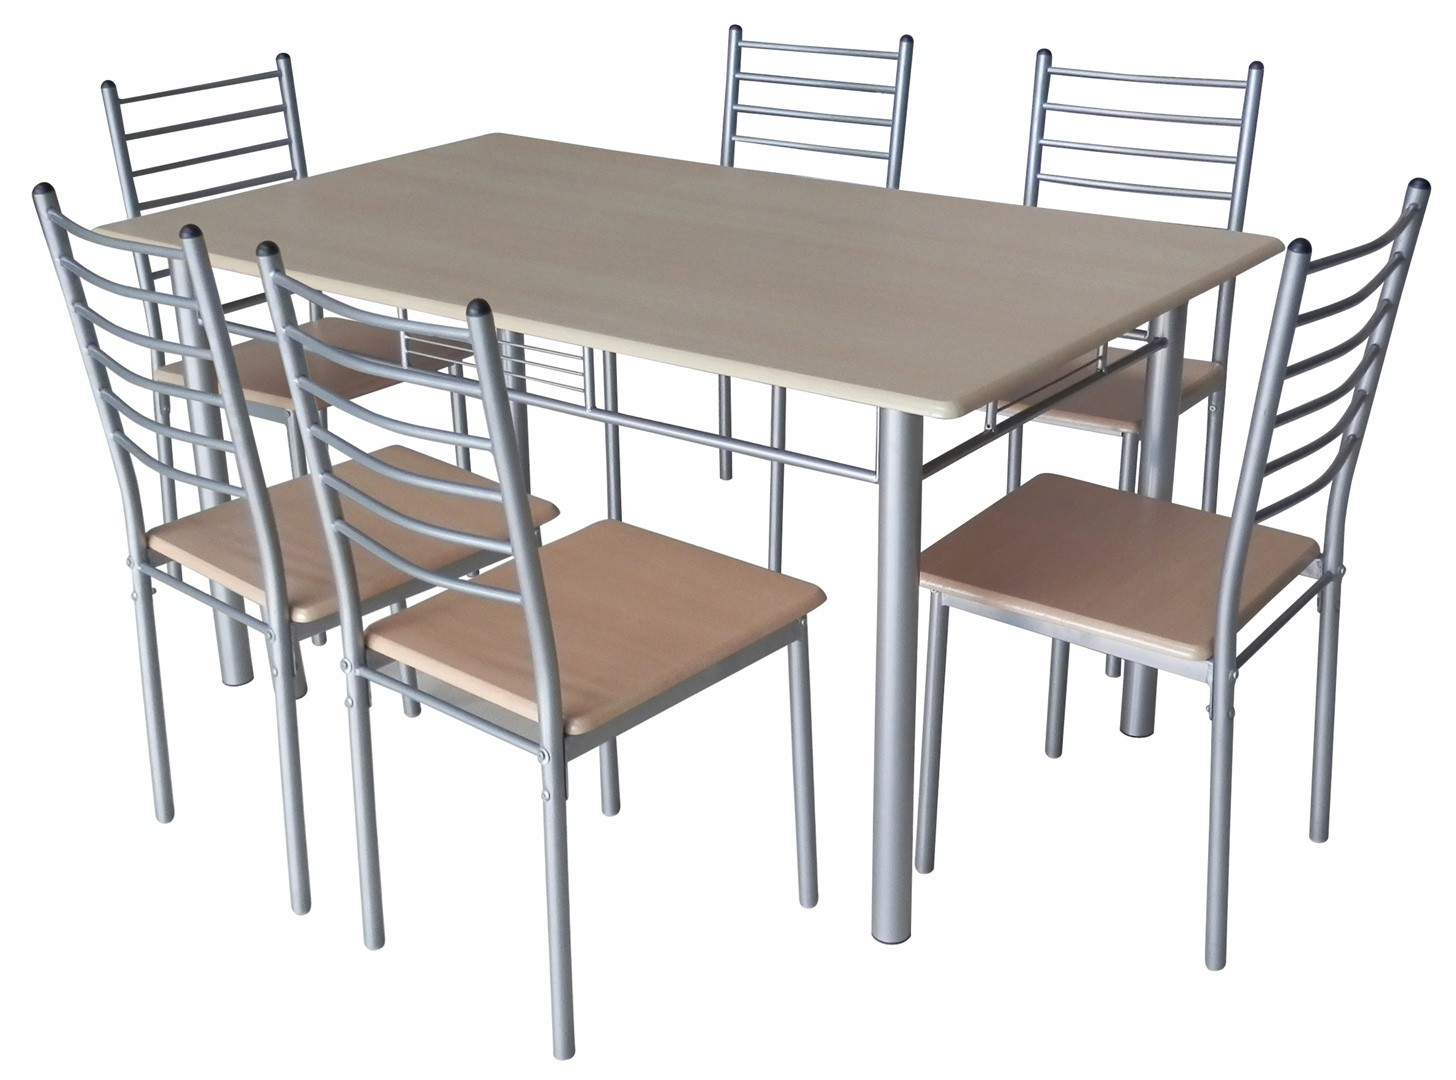 Ensemble table et chaises de cuisine but chaise id es for Ensemble de cuisine table et chaises